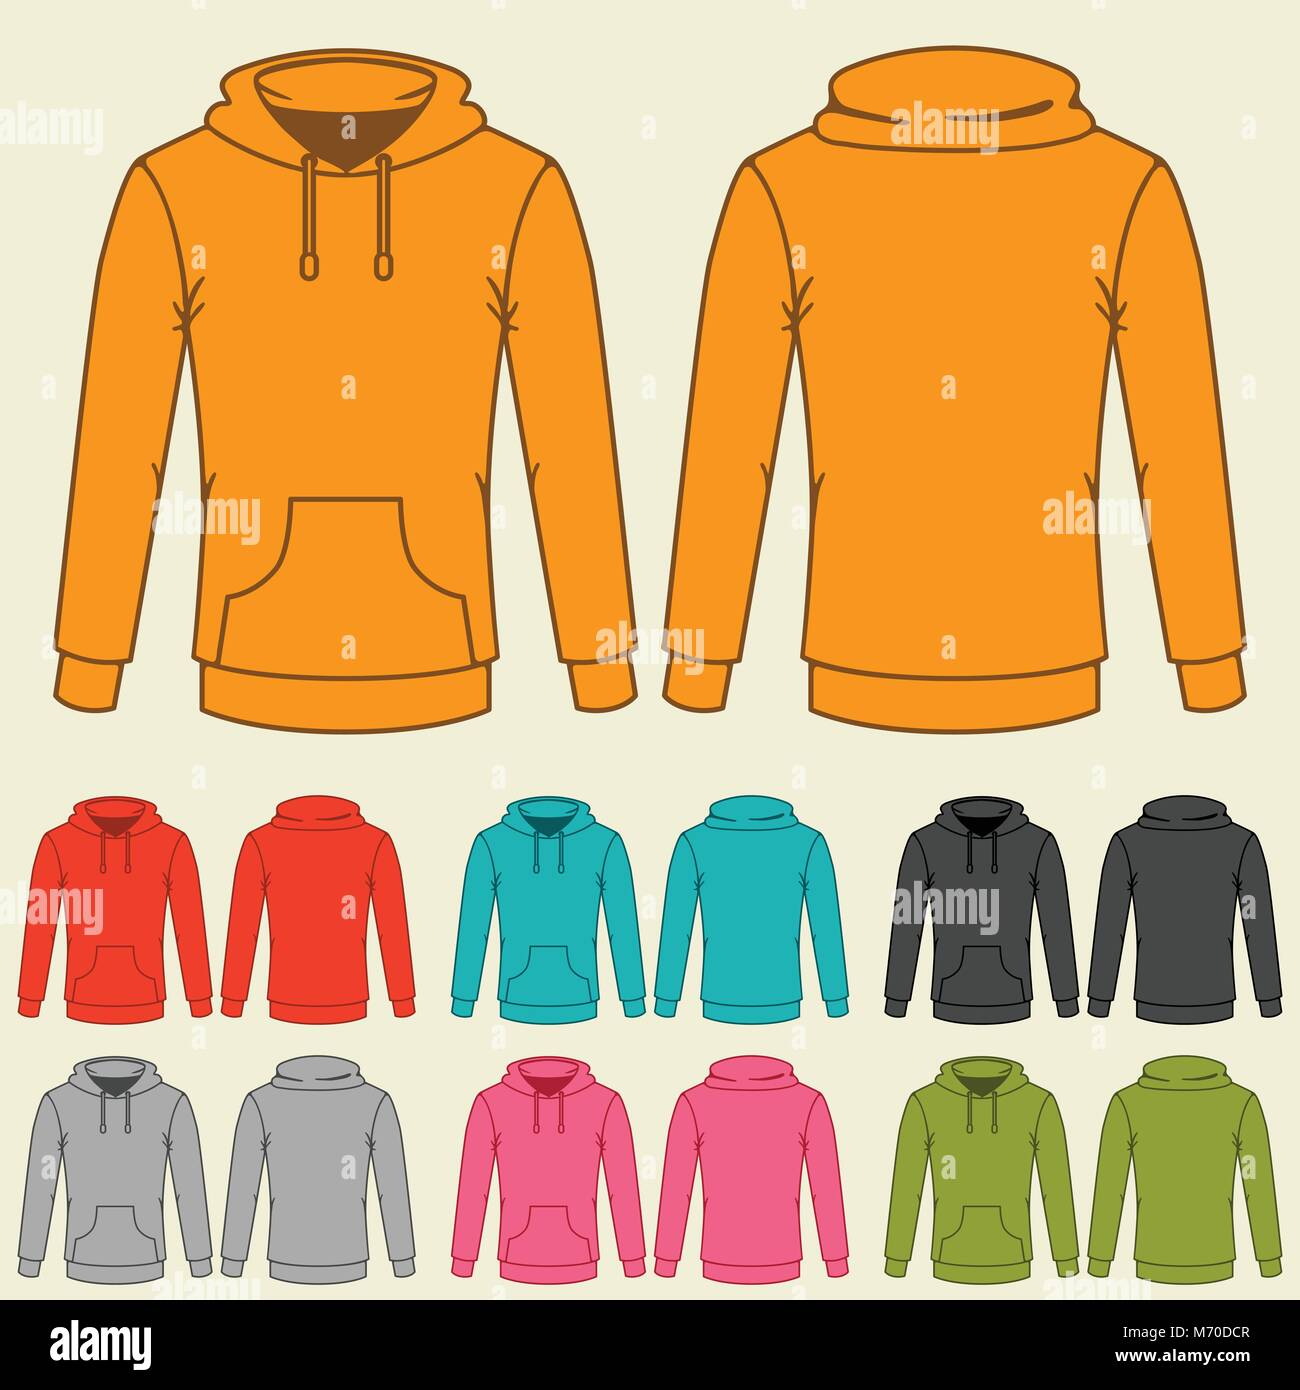 Pullover Template Stockfotos & Pullover Template Bilder - Alamy